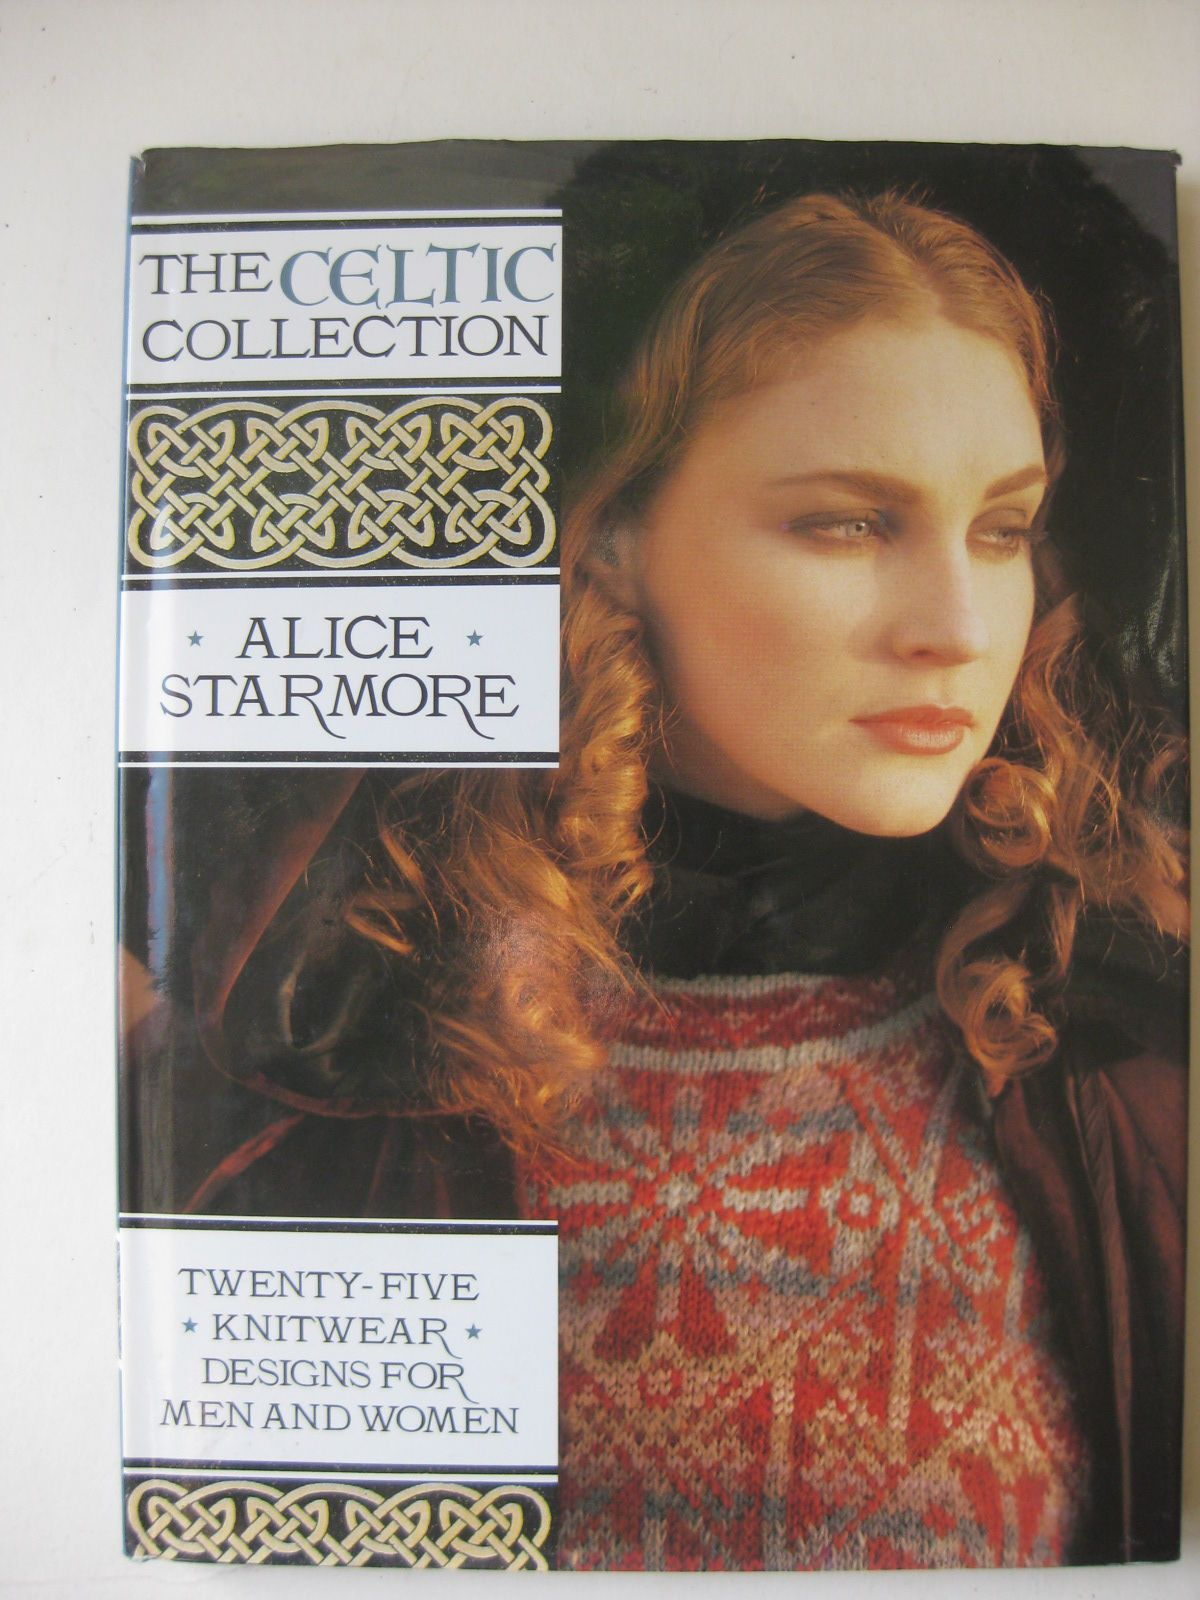 Starmore, Alice - The Celtic Collection 25 Knitware Designs for Men and Women